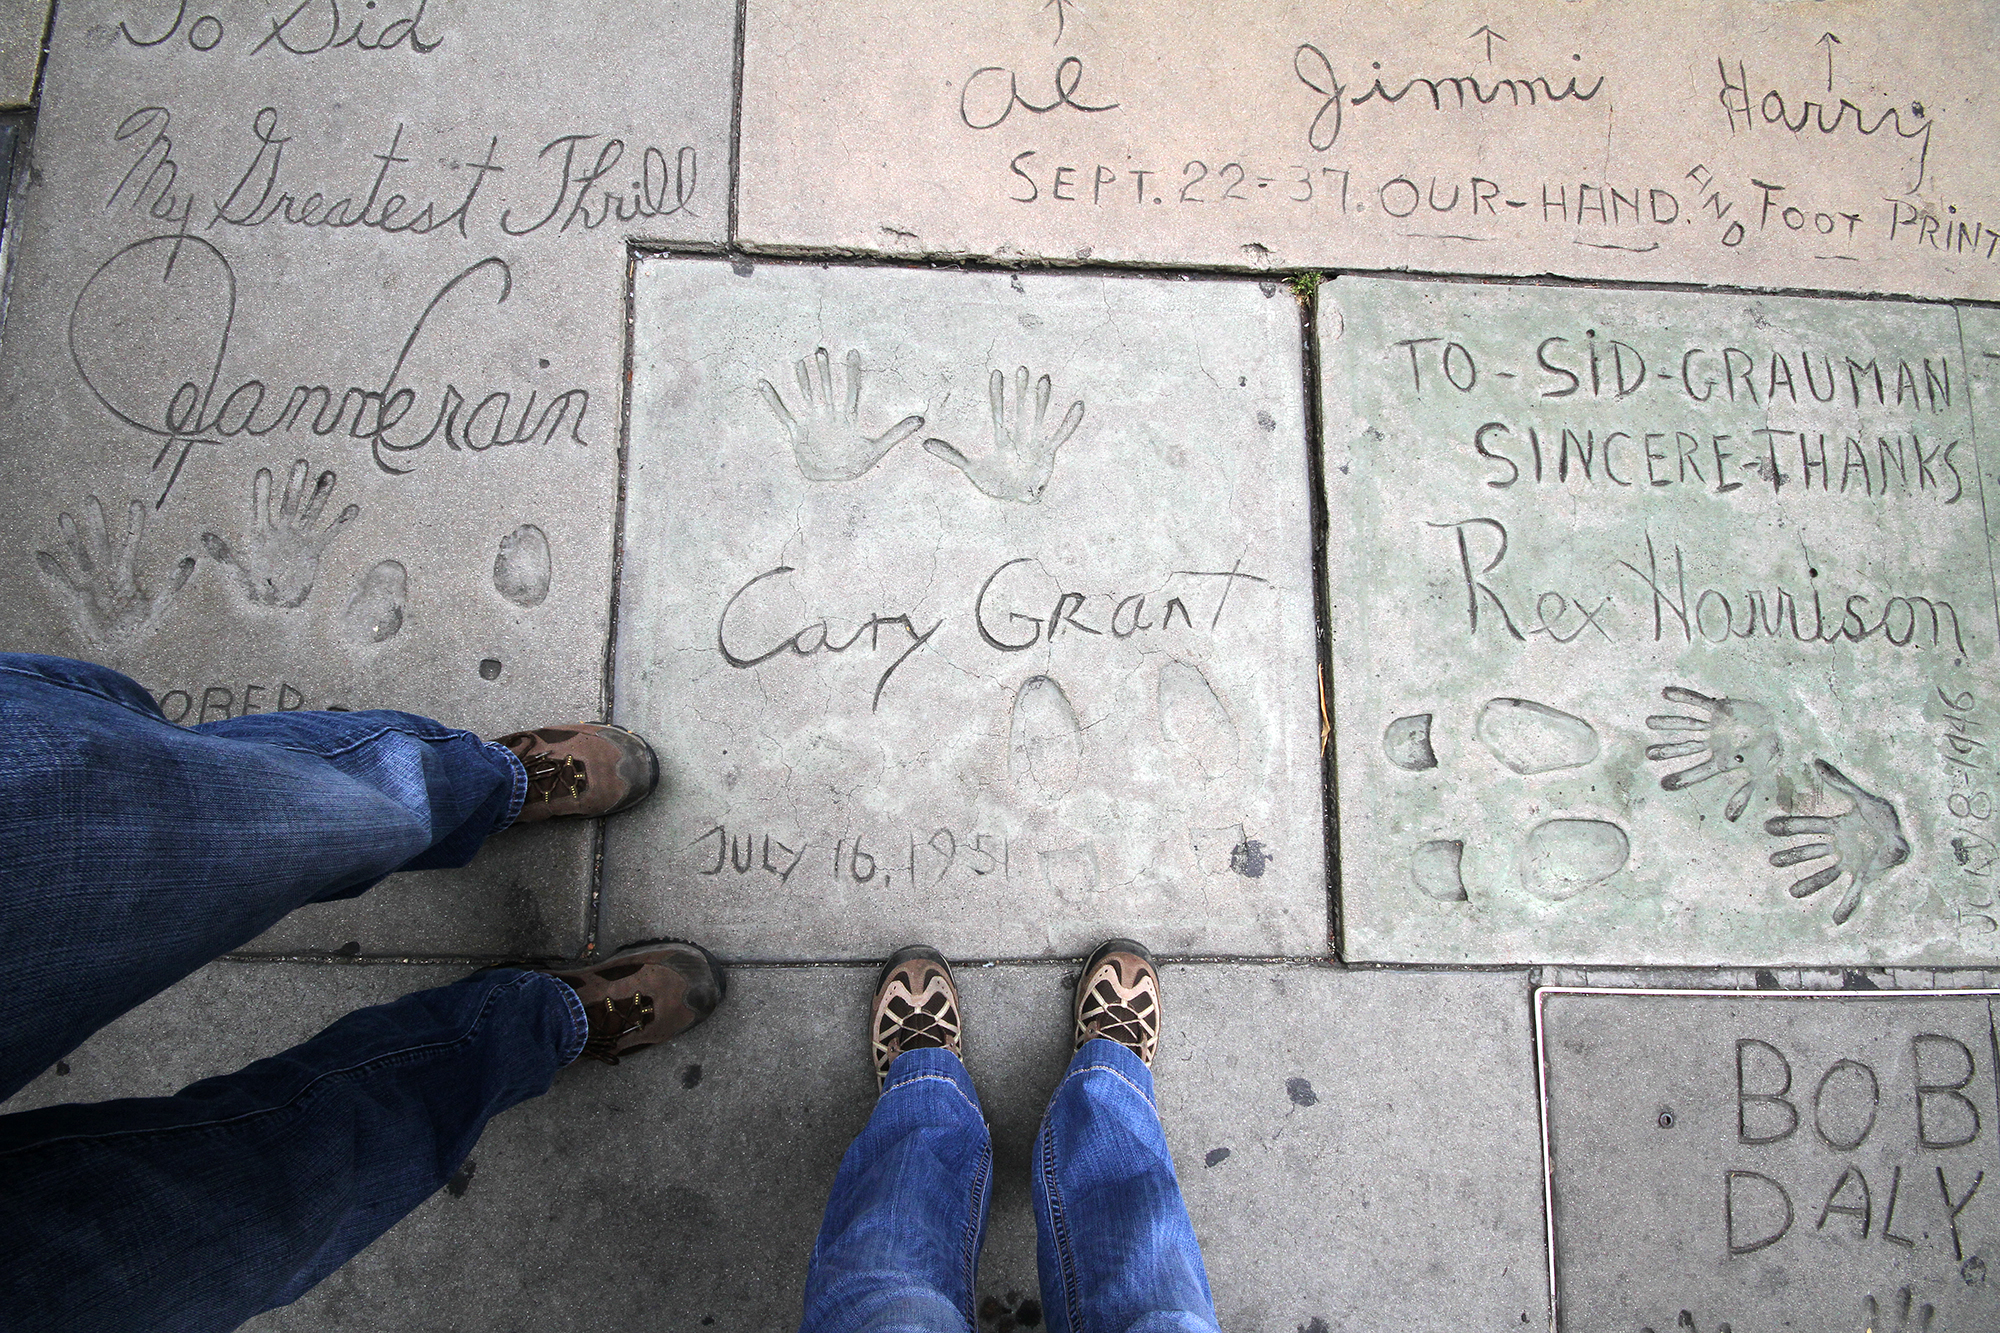 Cary Grant footprints